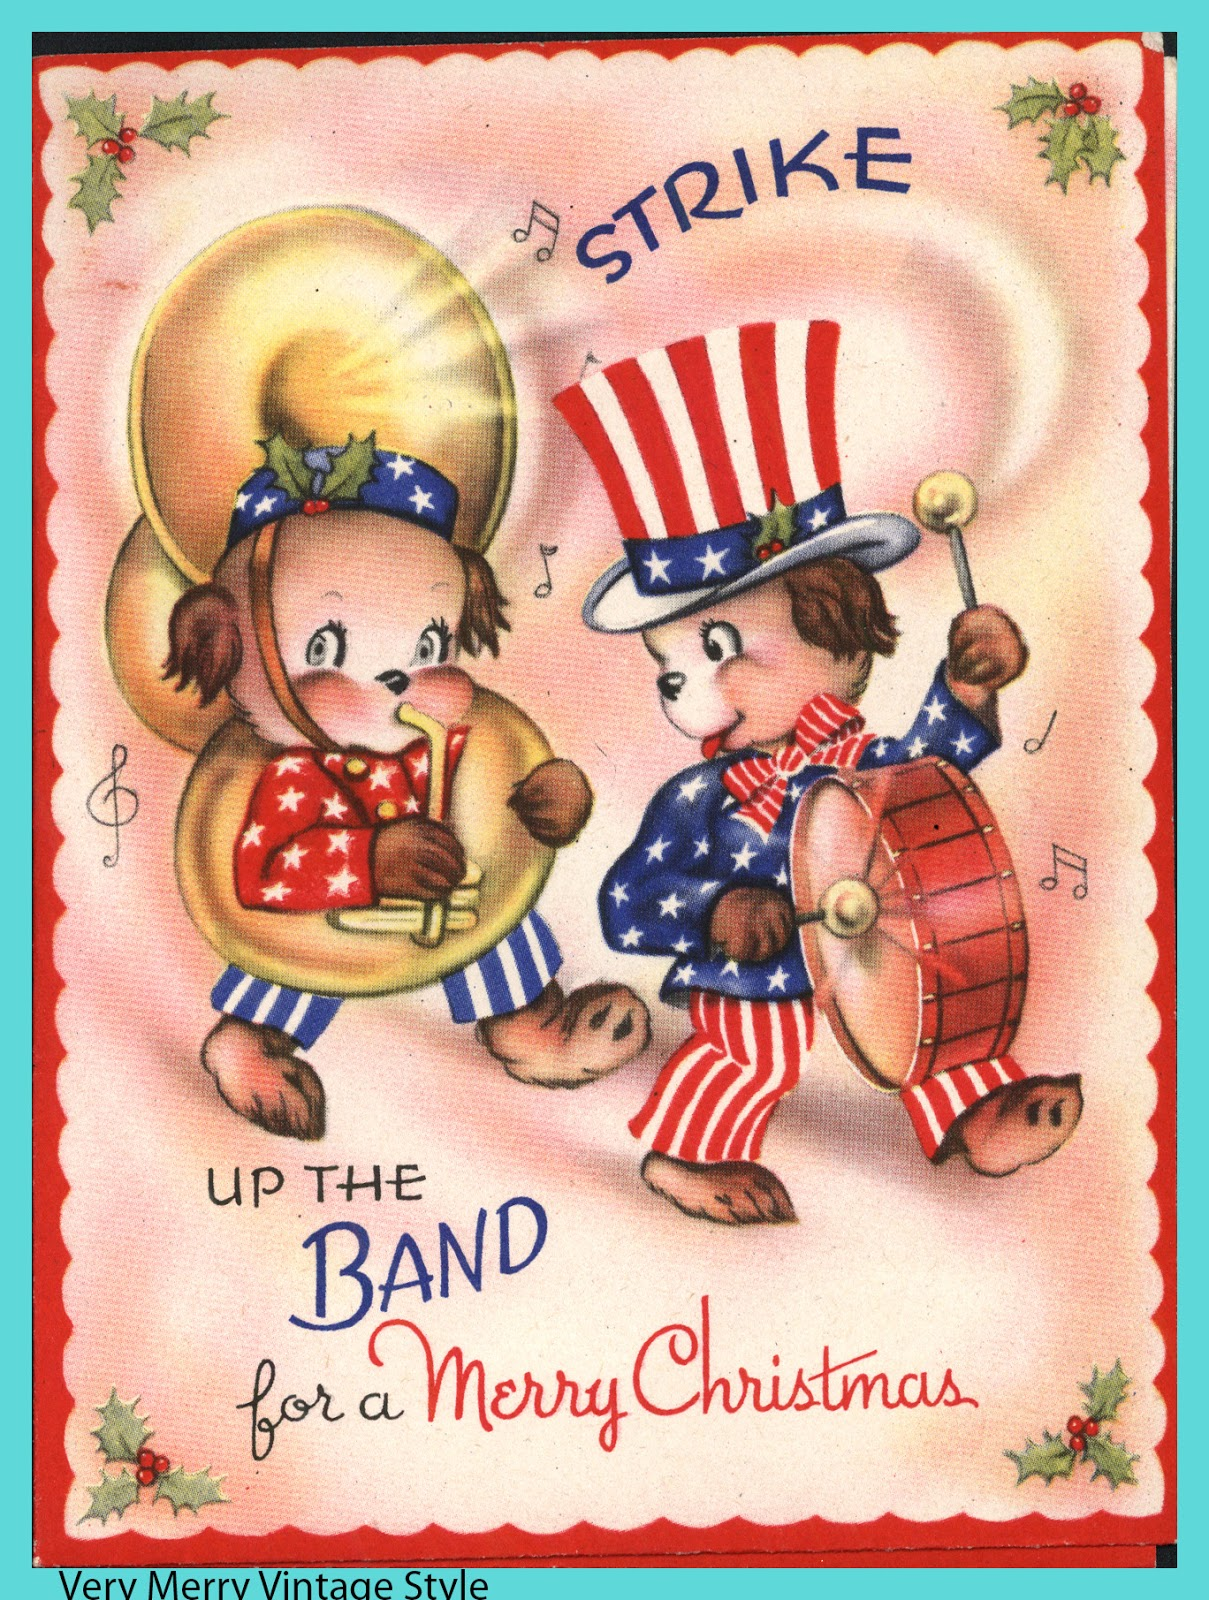 very merry vintage syle vintage christmas card with 4th of july